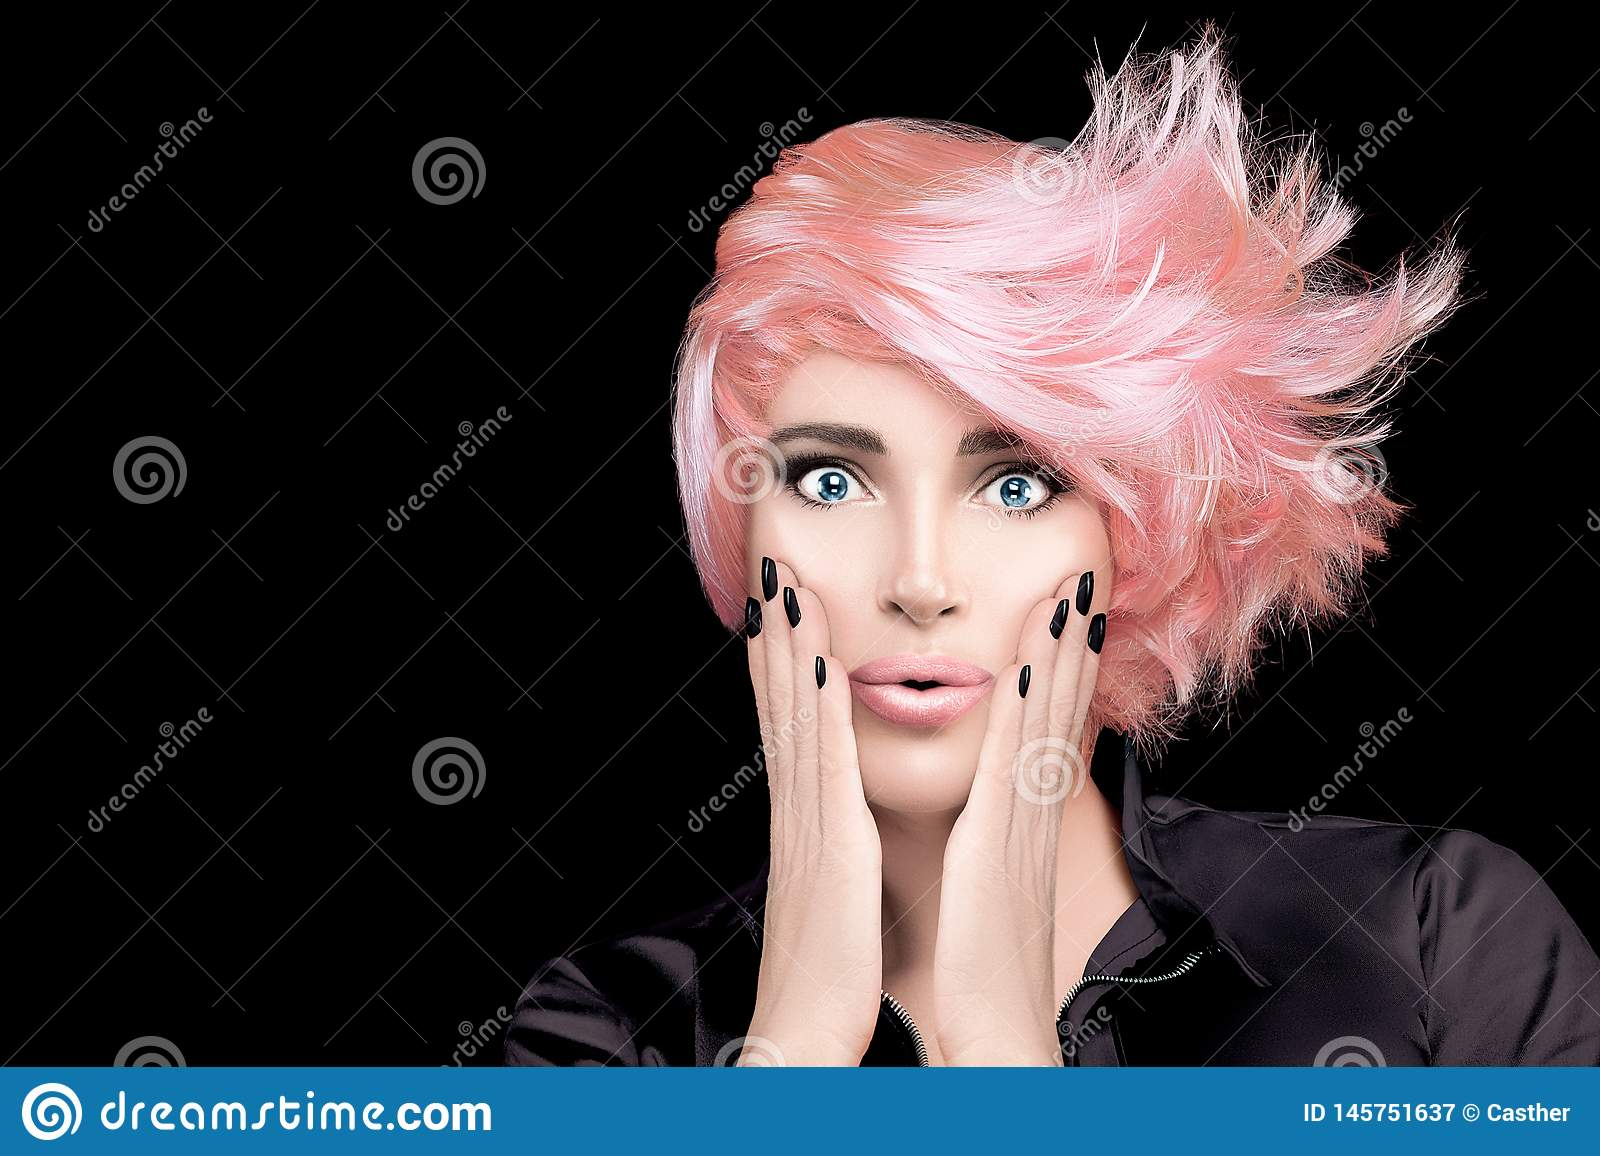 Fashion model girl with stylish rose gold hair. Beauty salon hair coloring concept. Short hairstyle